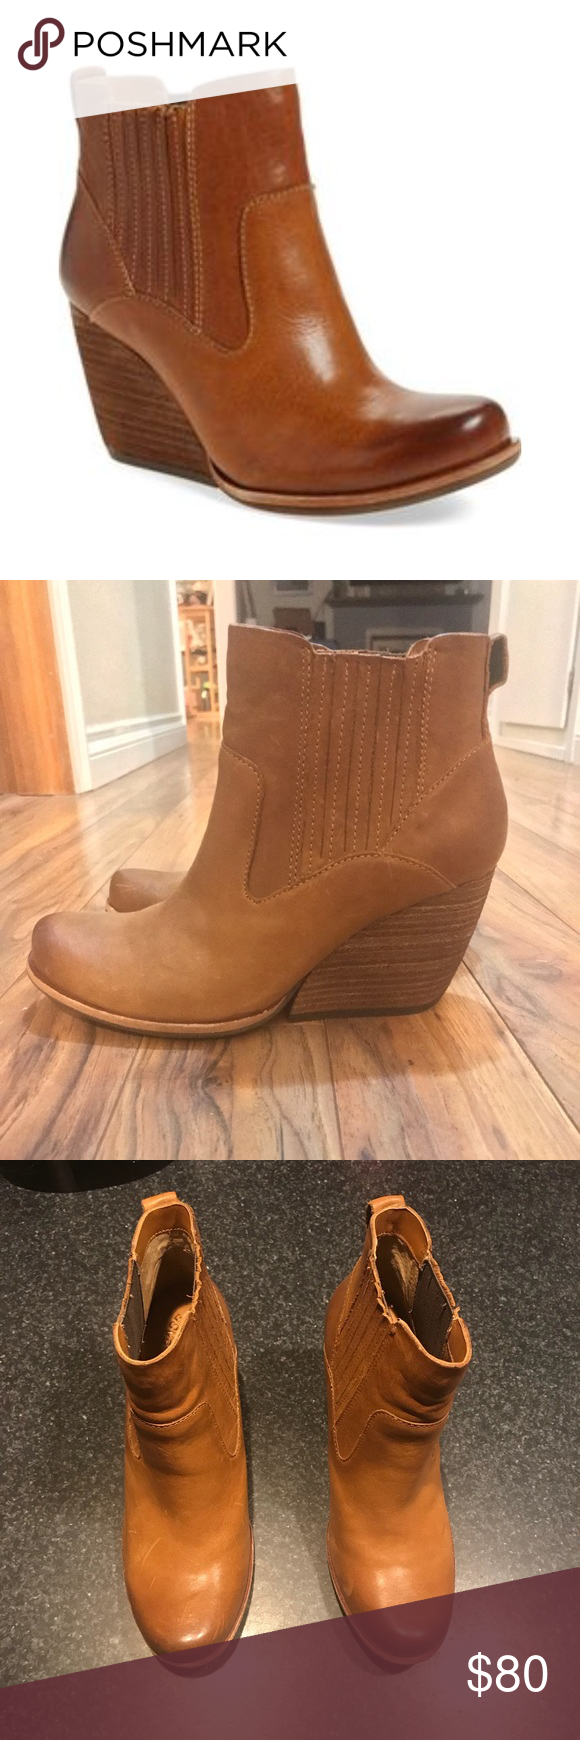 c7c38d1215d6 Kork Ease Verdelet  Wedge Bootie Kork Ease wedge booties in beautiful camel  color Brand new never worn outside Size 8 Genuine leather Perfect fall  bootie!